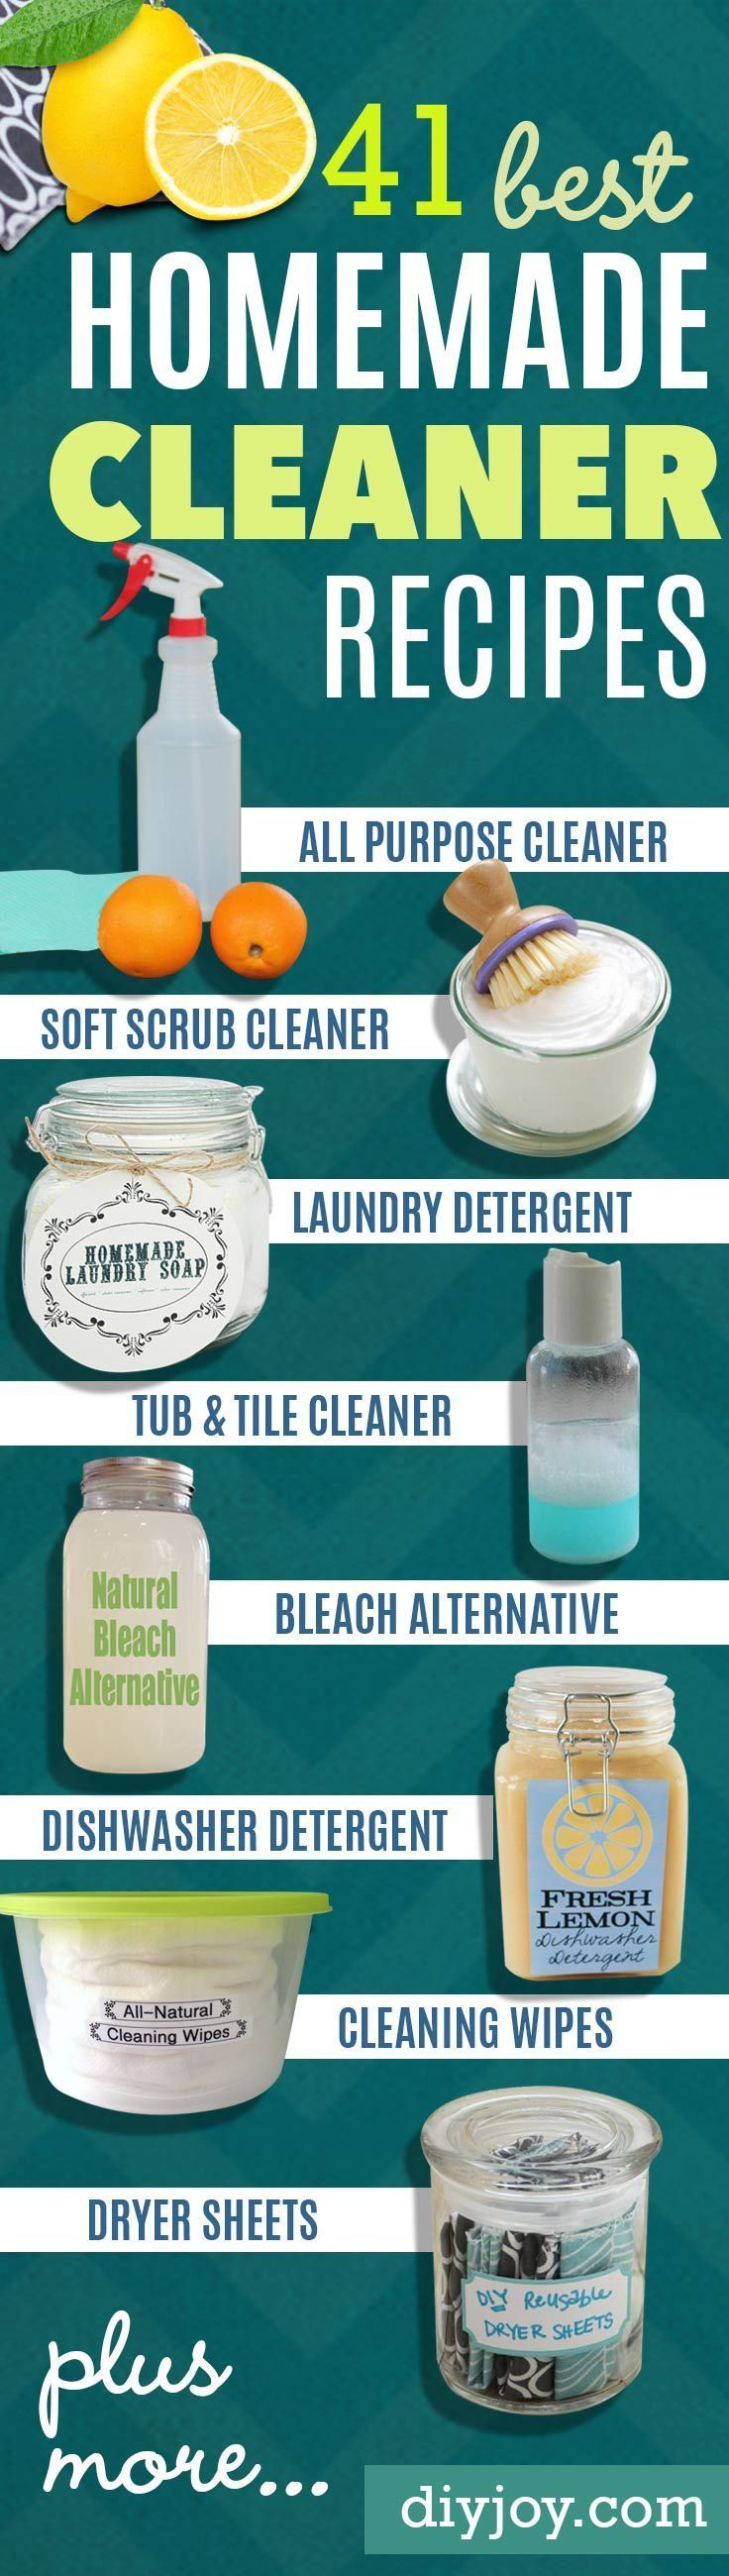 Best Natural Homemade DIY Cleaners and Recipes - All Purposed Home Care, Detergents and Cleaning with Vinegar, Essential Oils and Other Natural Ingredients For Cleaning Bathroom, Kitchen, Floors, Laundry, Furniture and More Ideas diyjoy.com/...